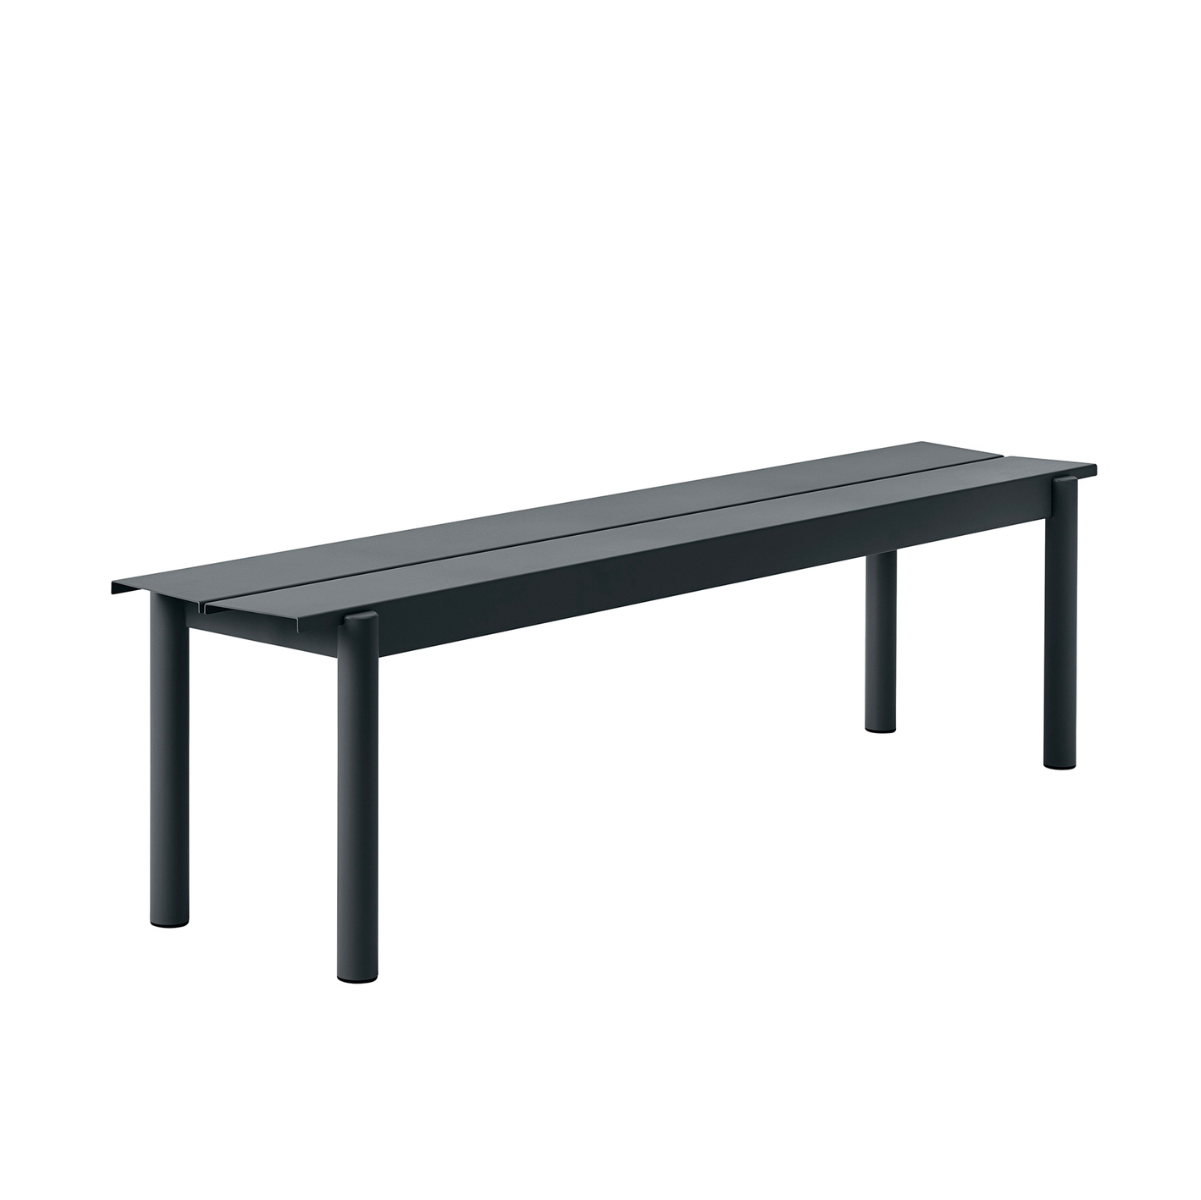 Muuto Linear Steel bench 170 * 34 cm